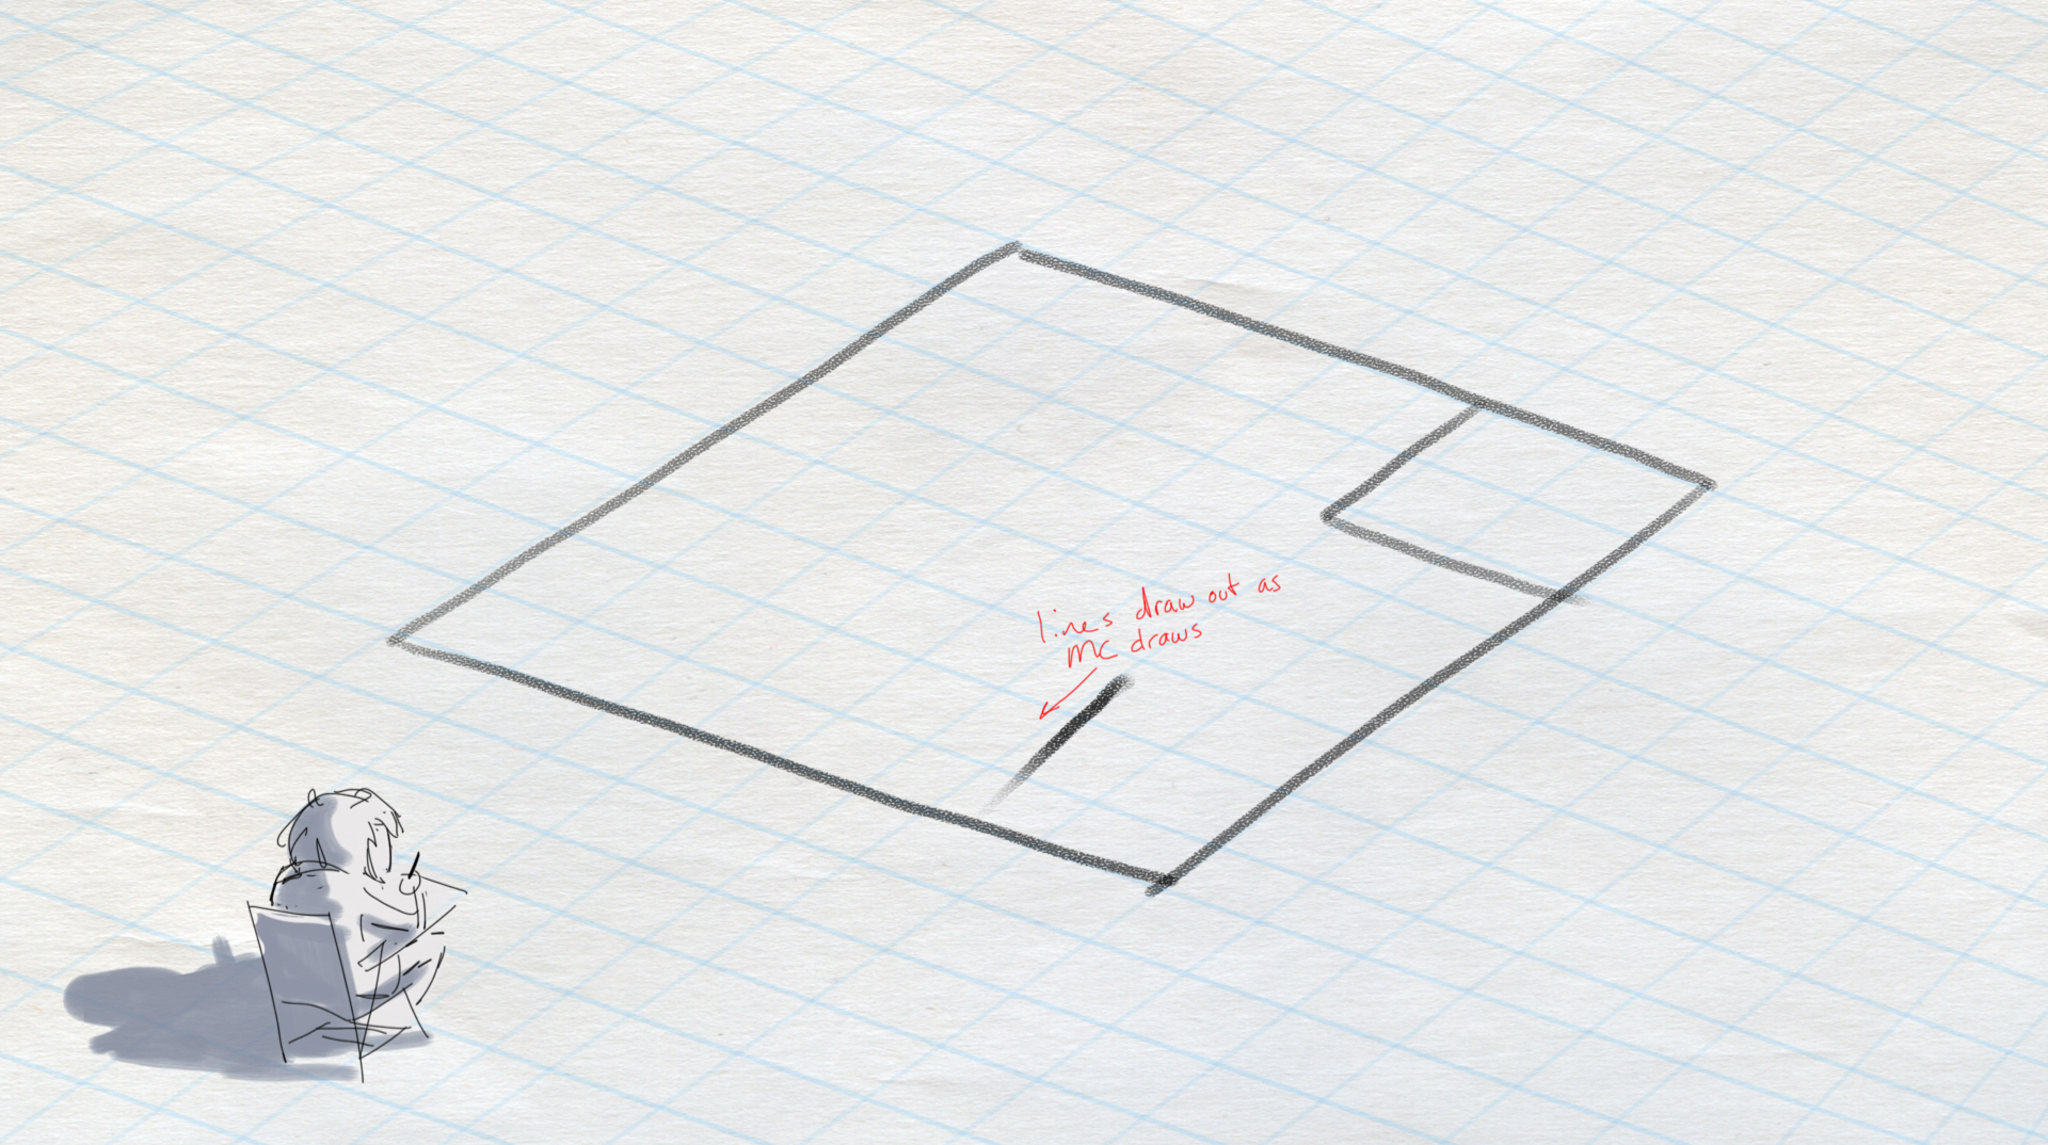 Early sketch of Where Cards Fall showing protagonist drawing a world into existence on graph paper